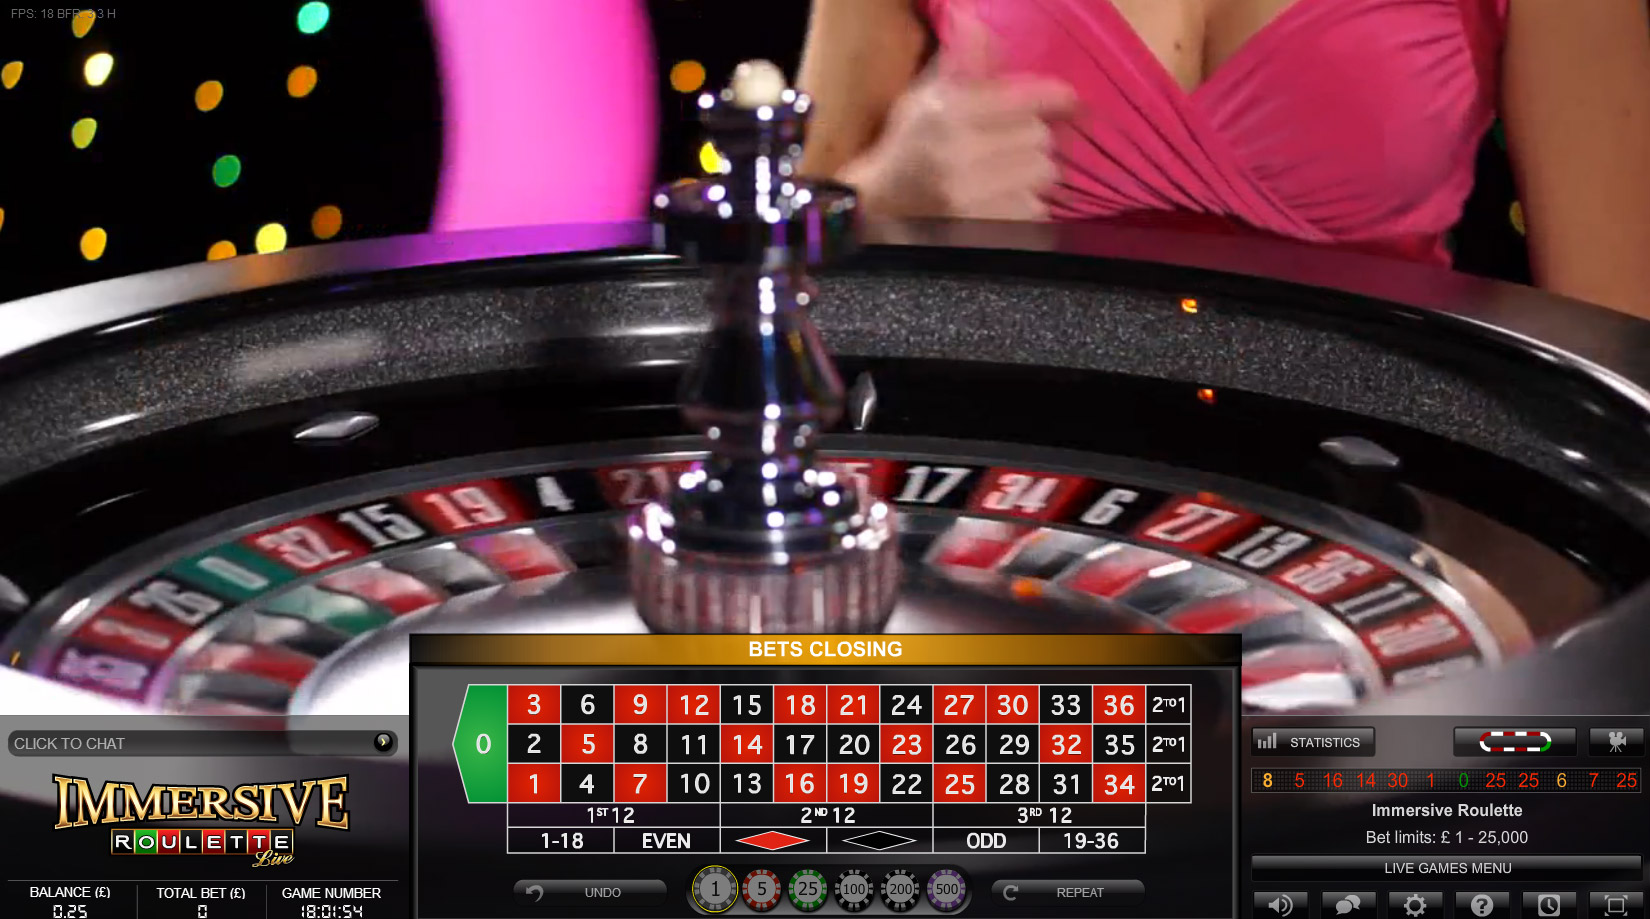 Just spin casino